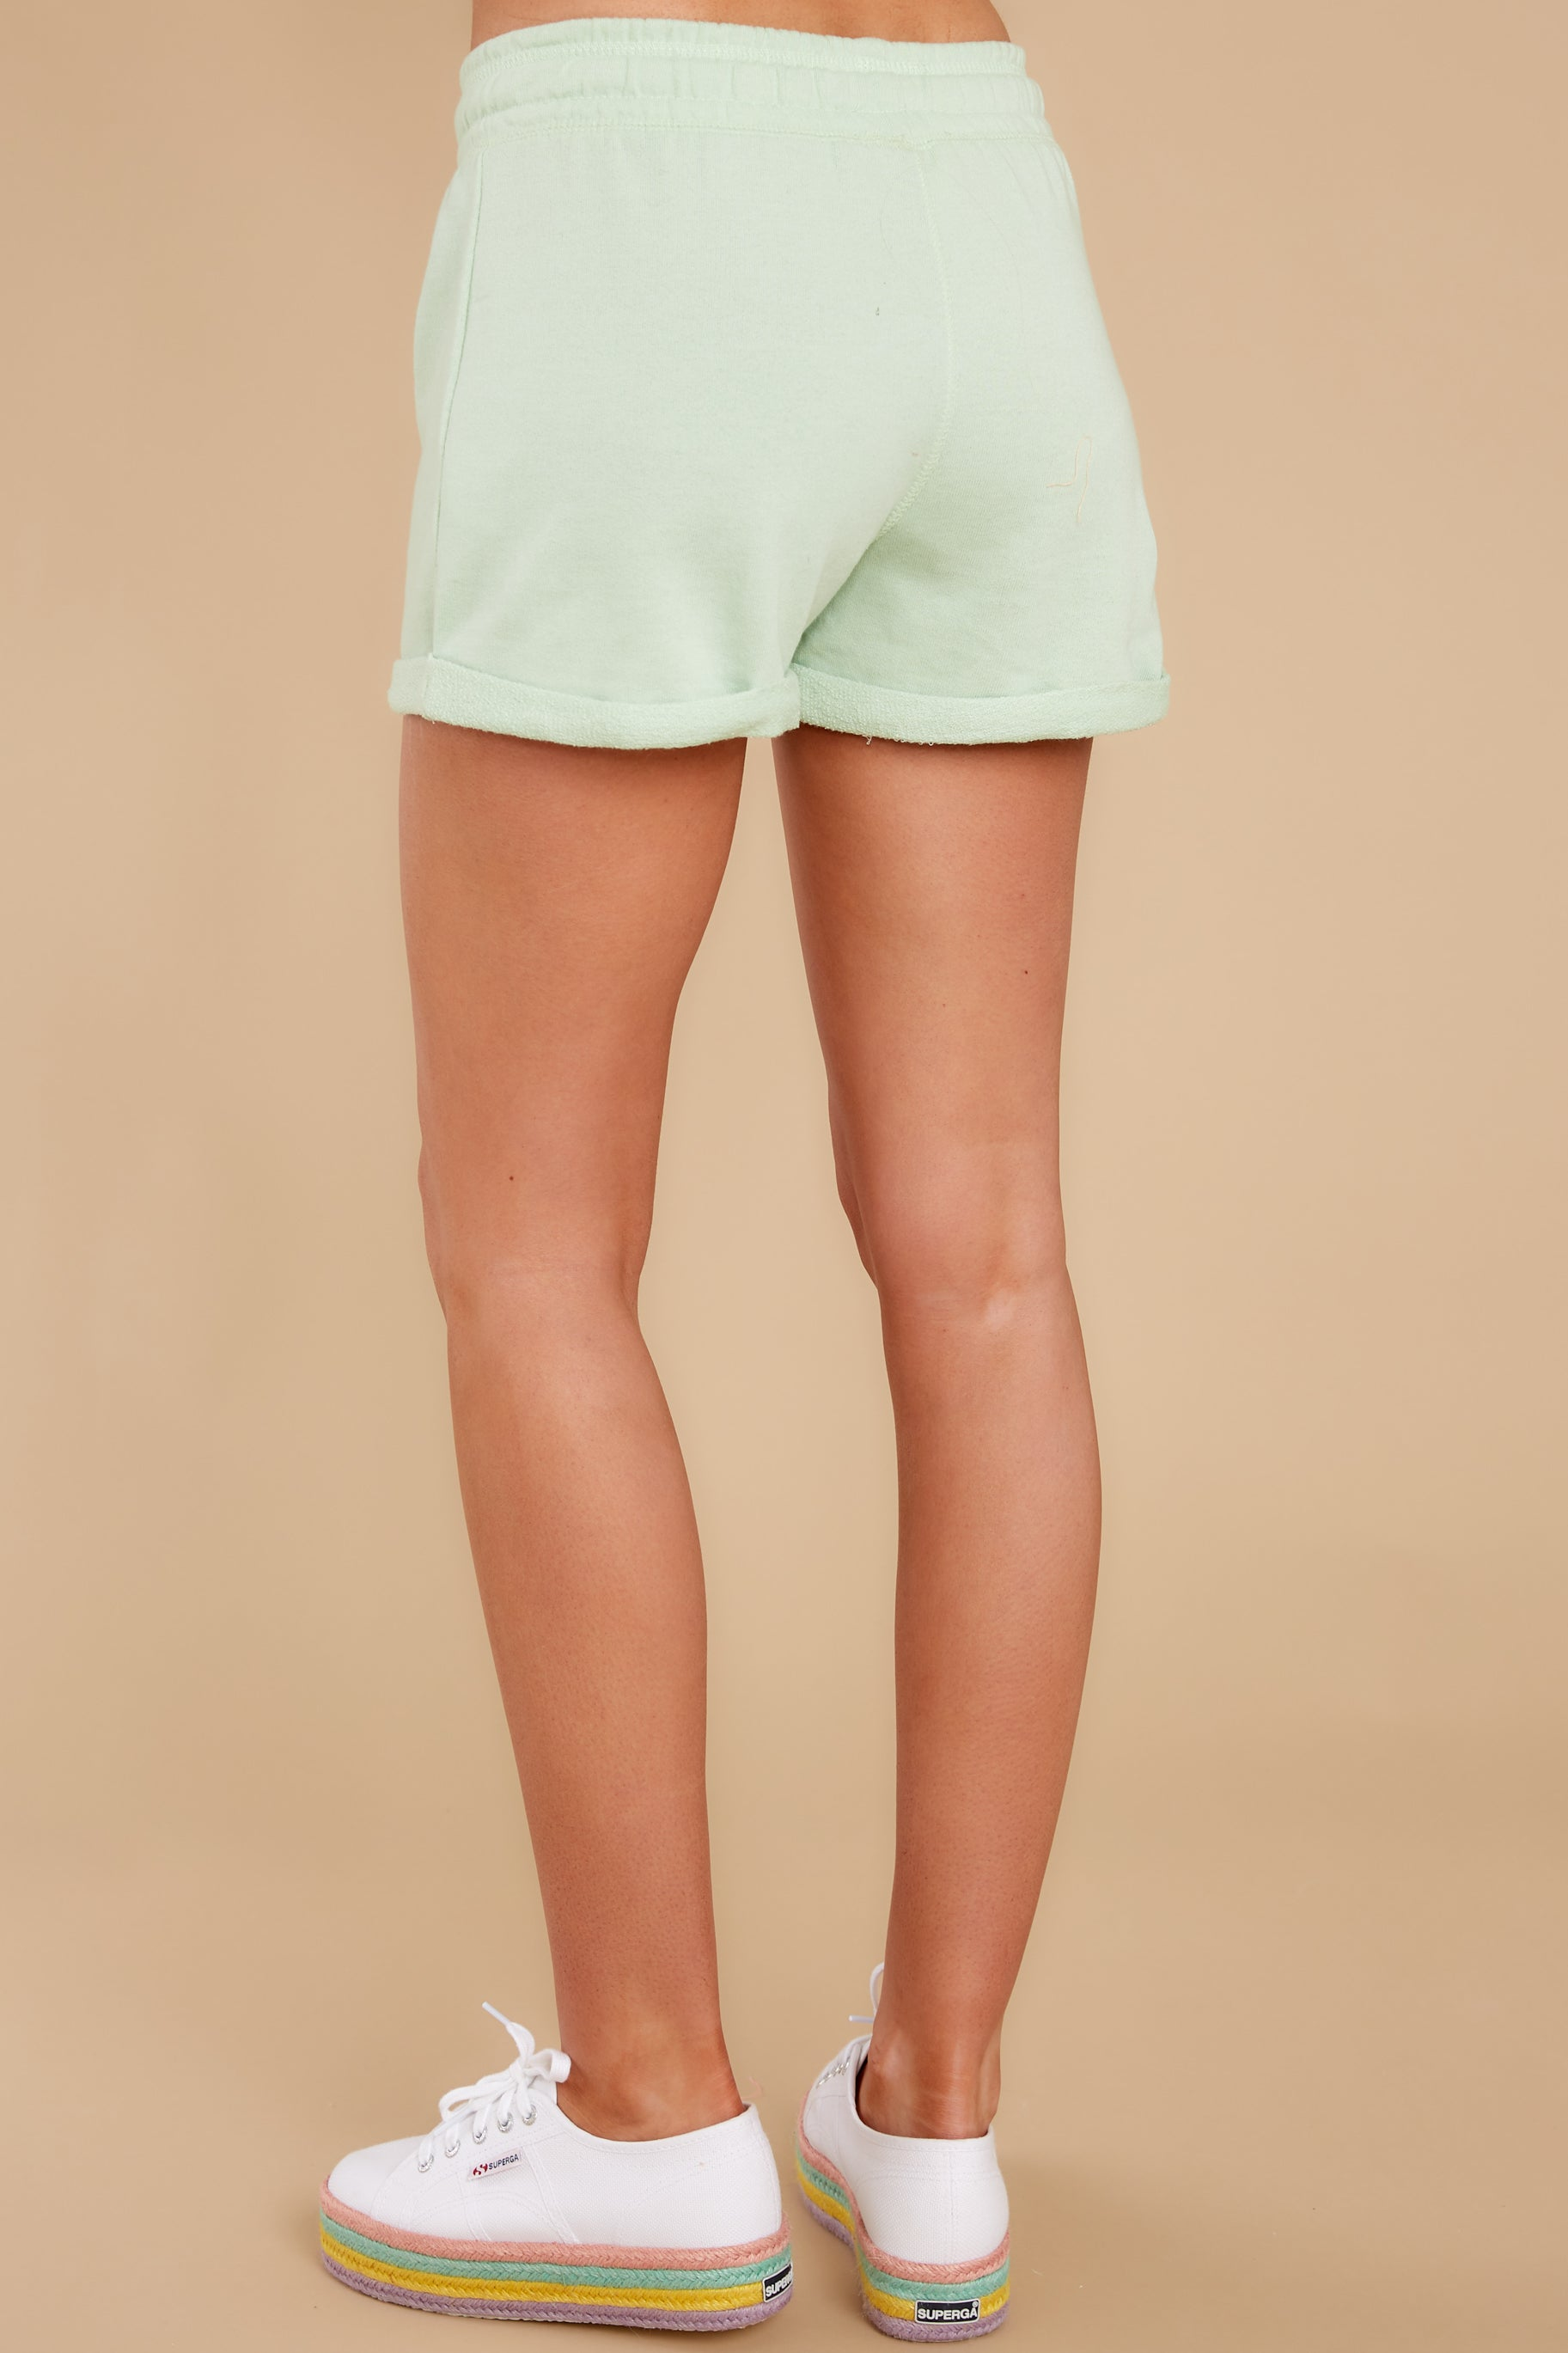 3 Such A Sweetheart Pastel Green Shorts at reddress.com